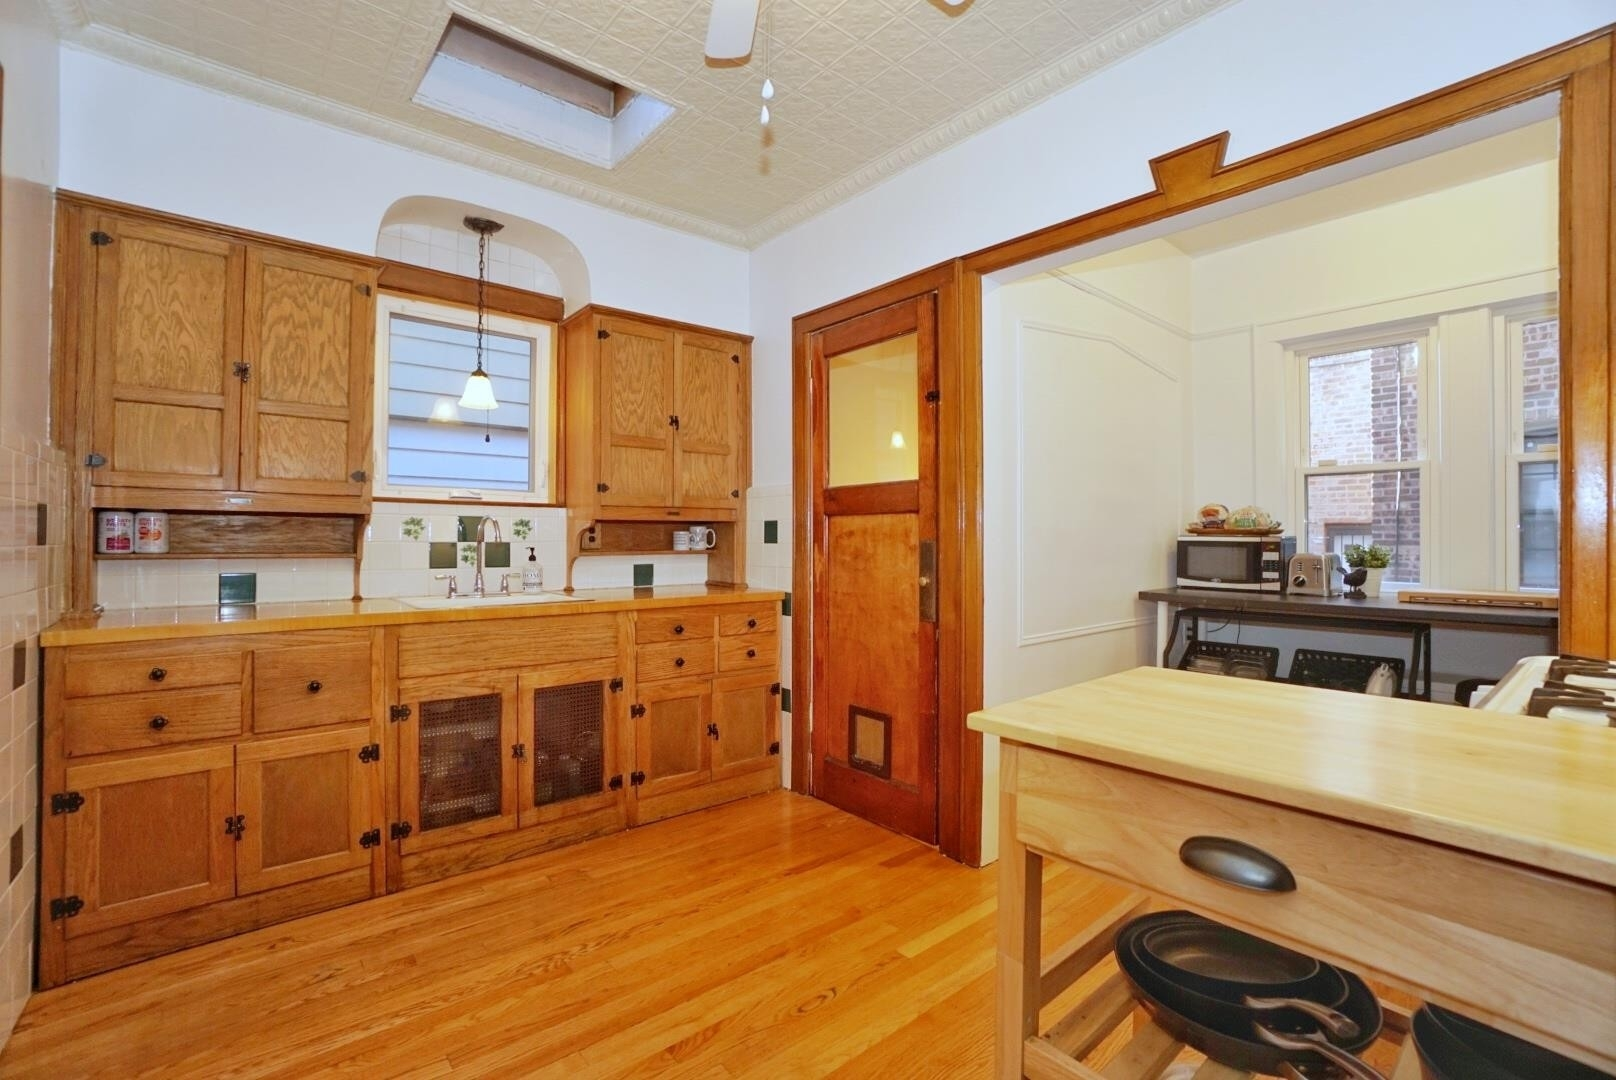 5. Single Family Townhouse for Sale at 1684 RYDER ST , TOWNHOUSE Marine Park, Brooklyn, NY 11234